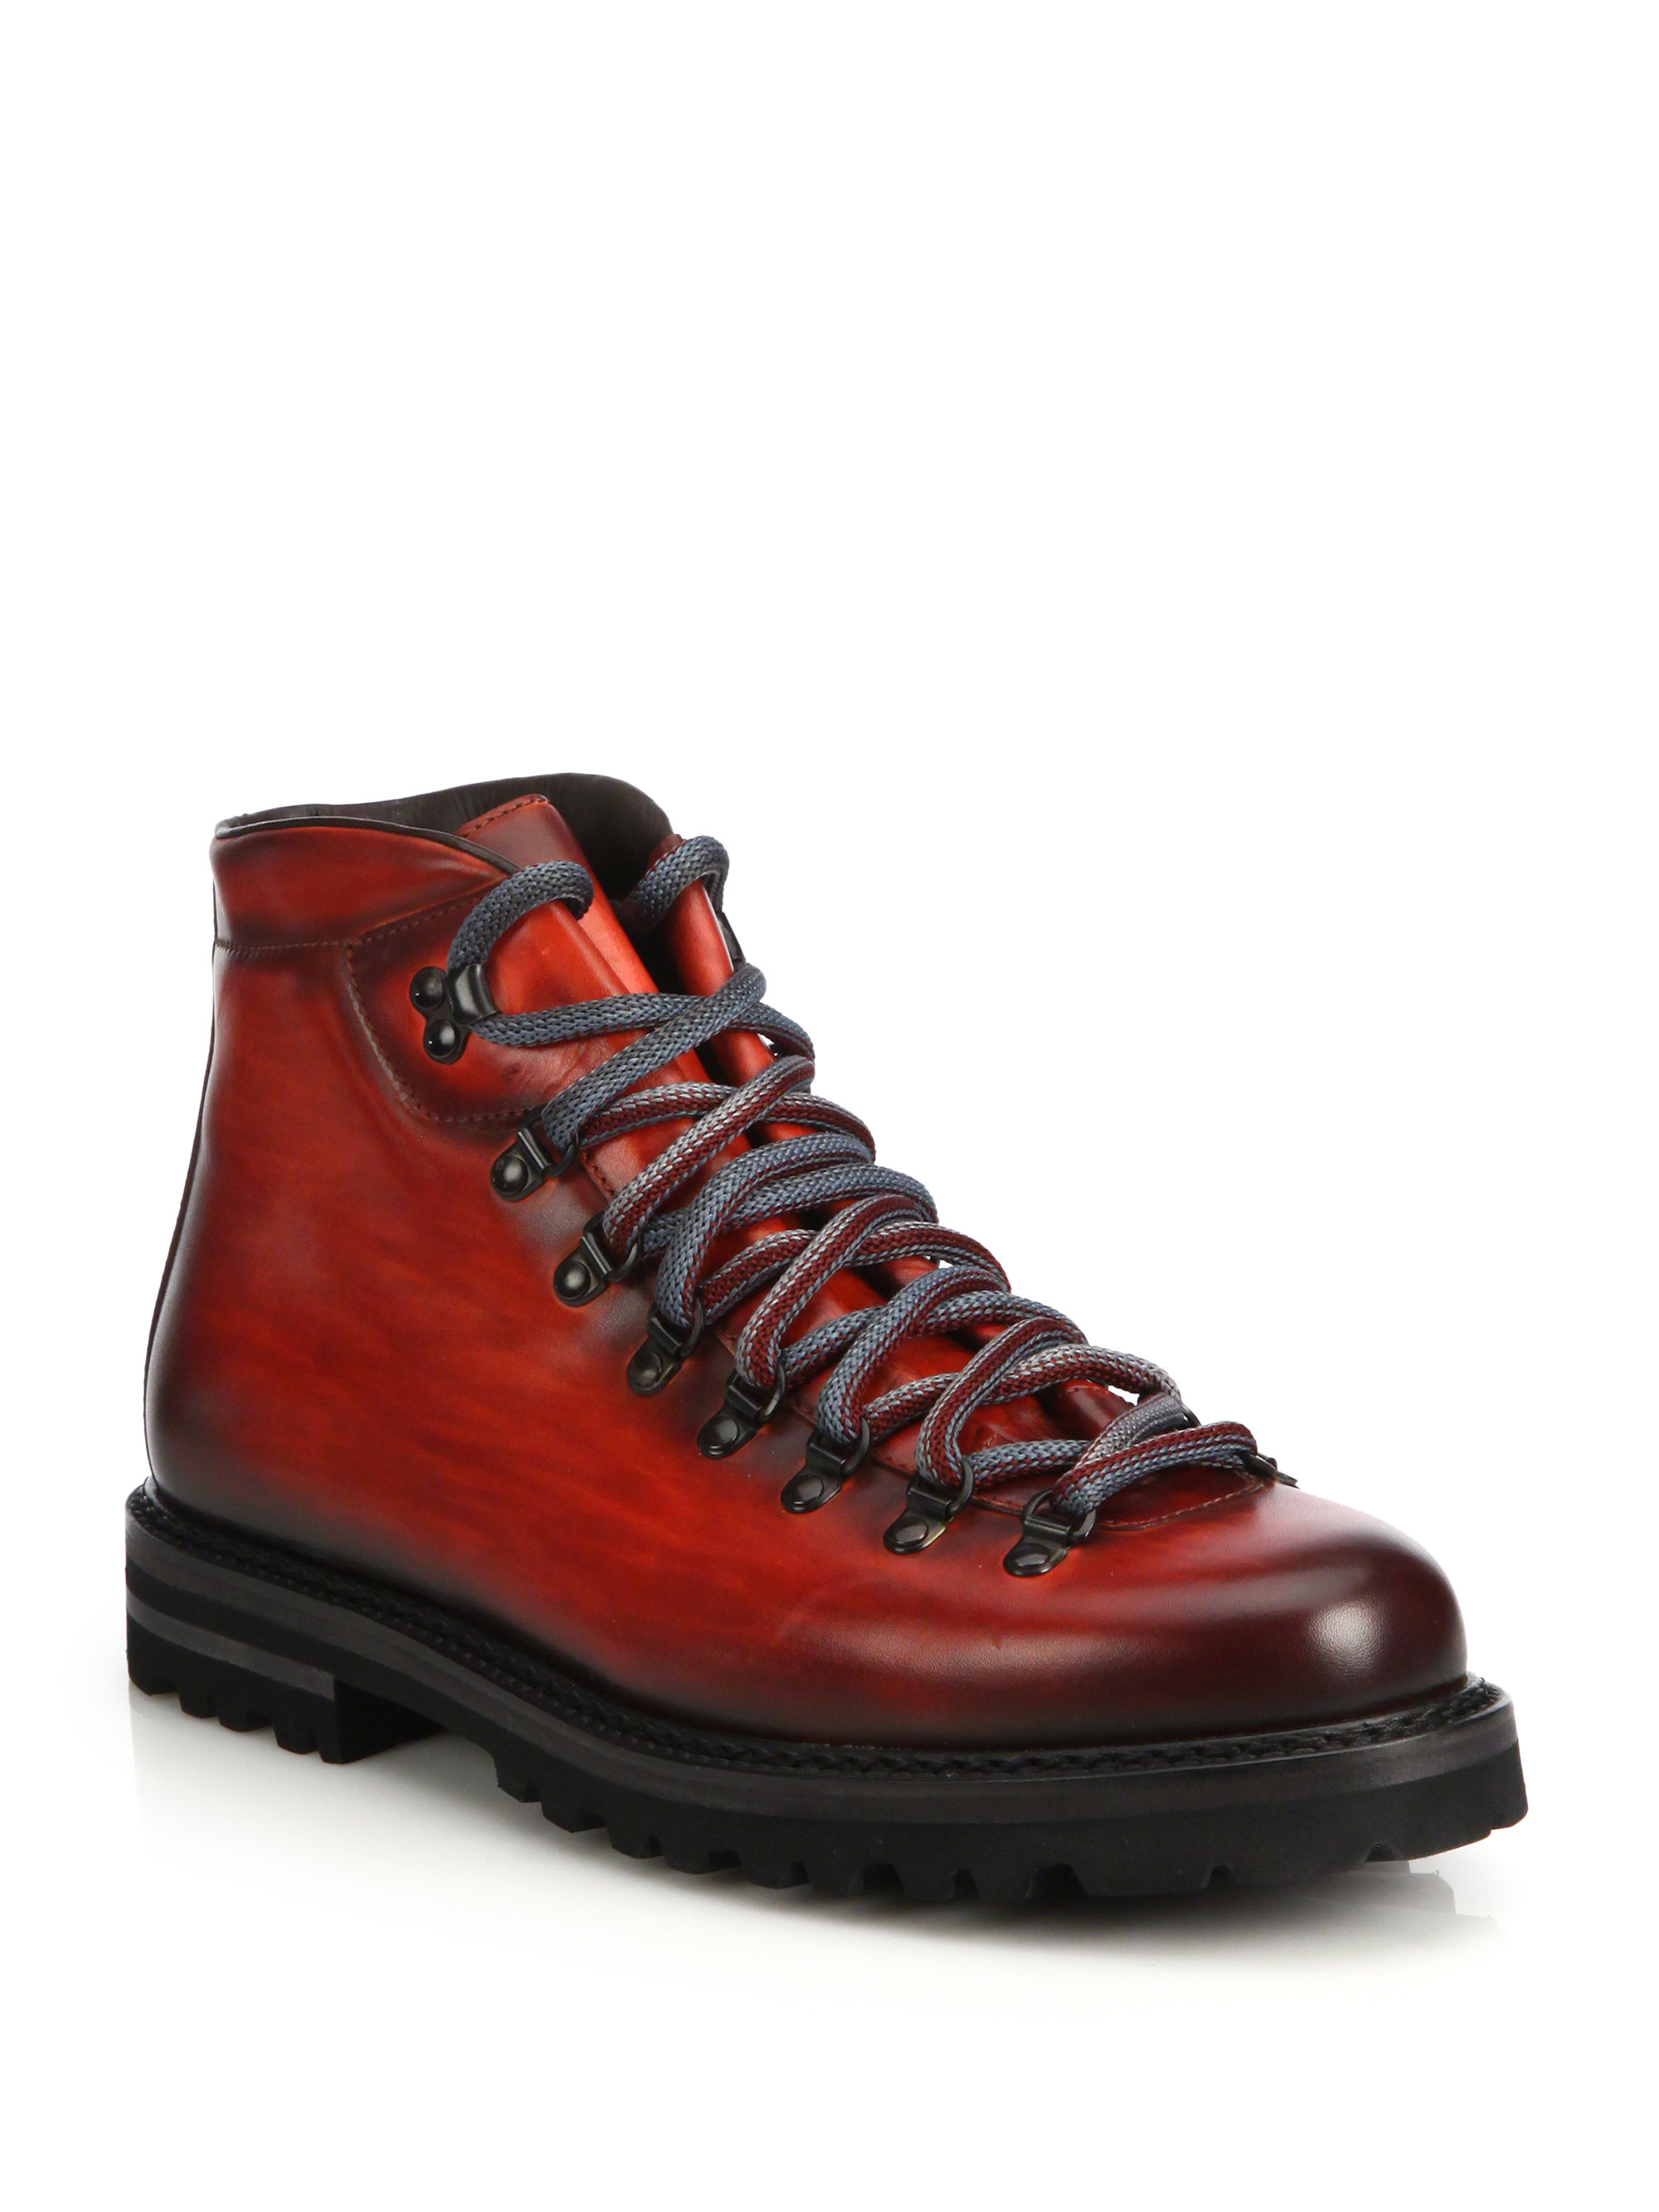 Saks Fifth Avenue Antiqued Leather Ankle Boots In Red For